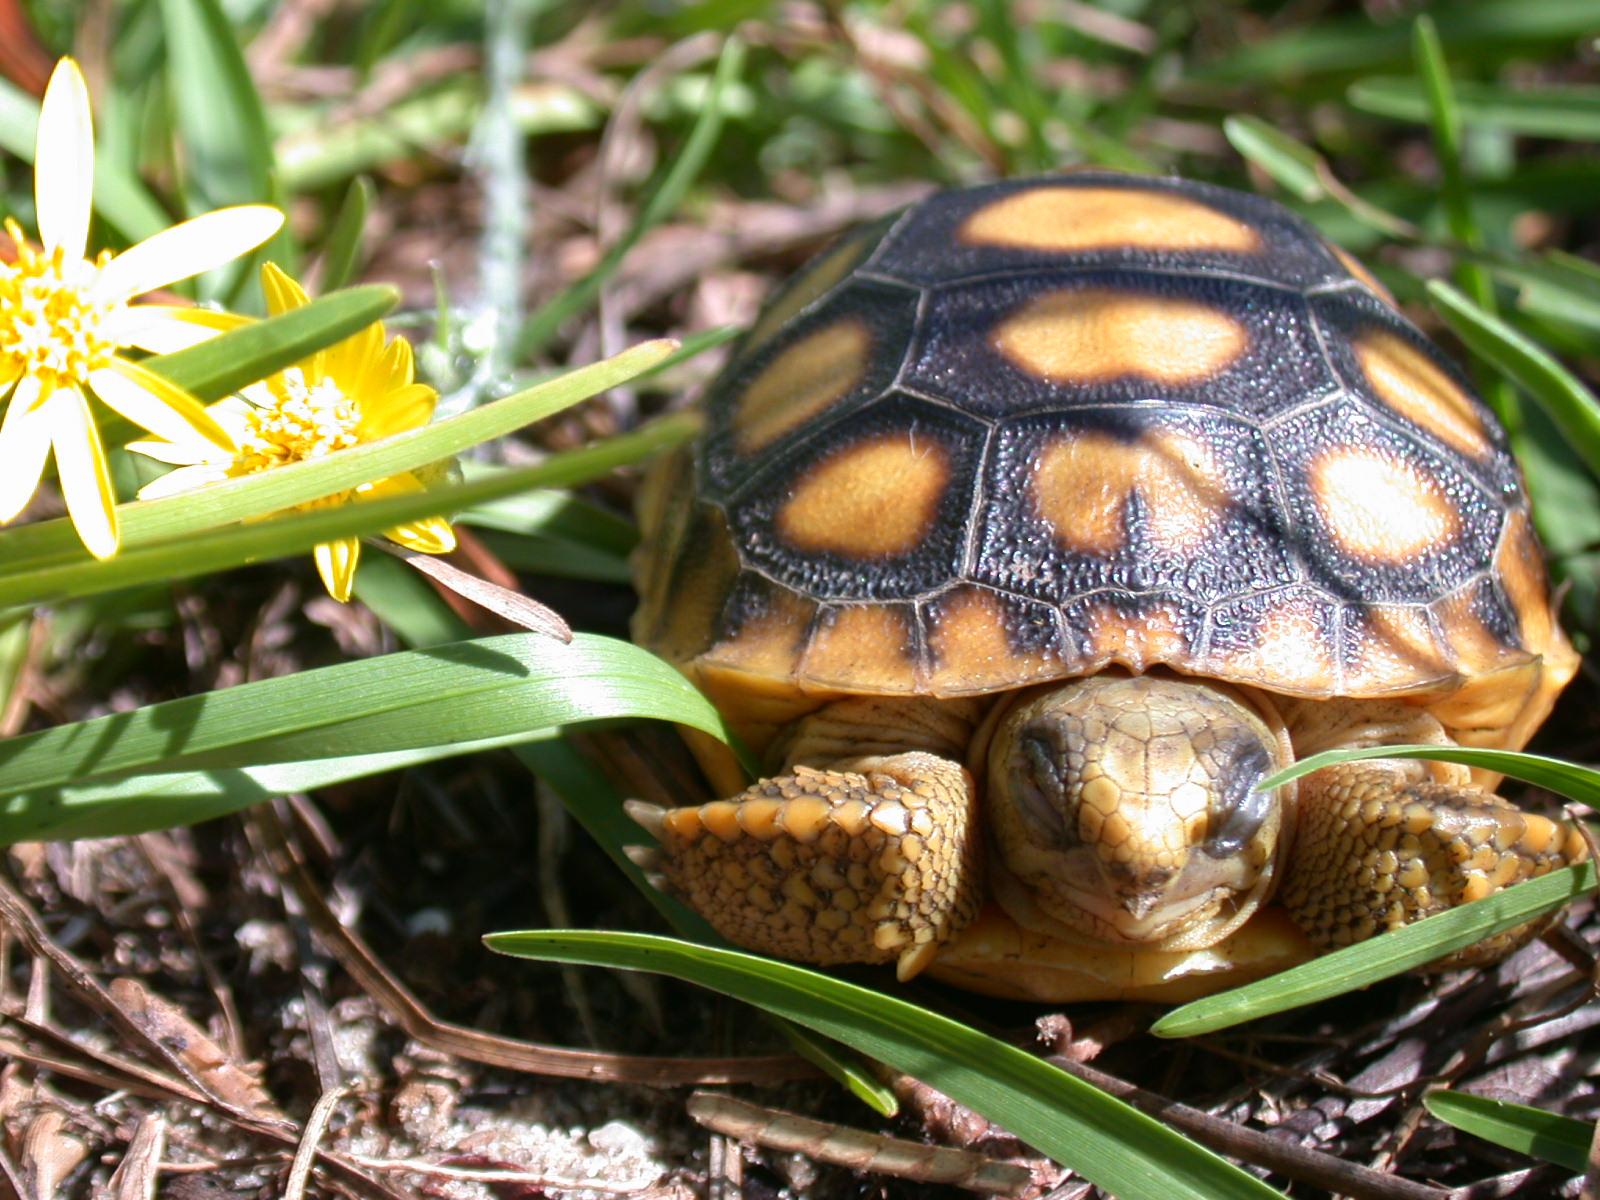 A young gopher tortoise. Photo by FWC.